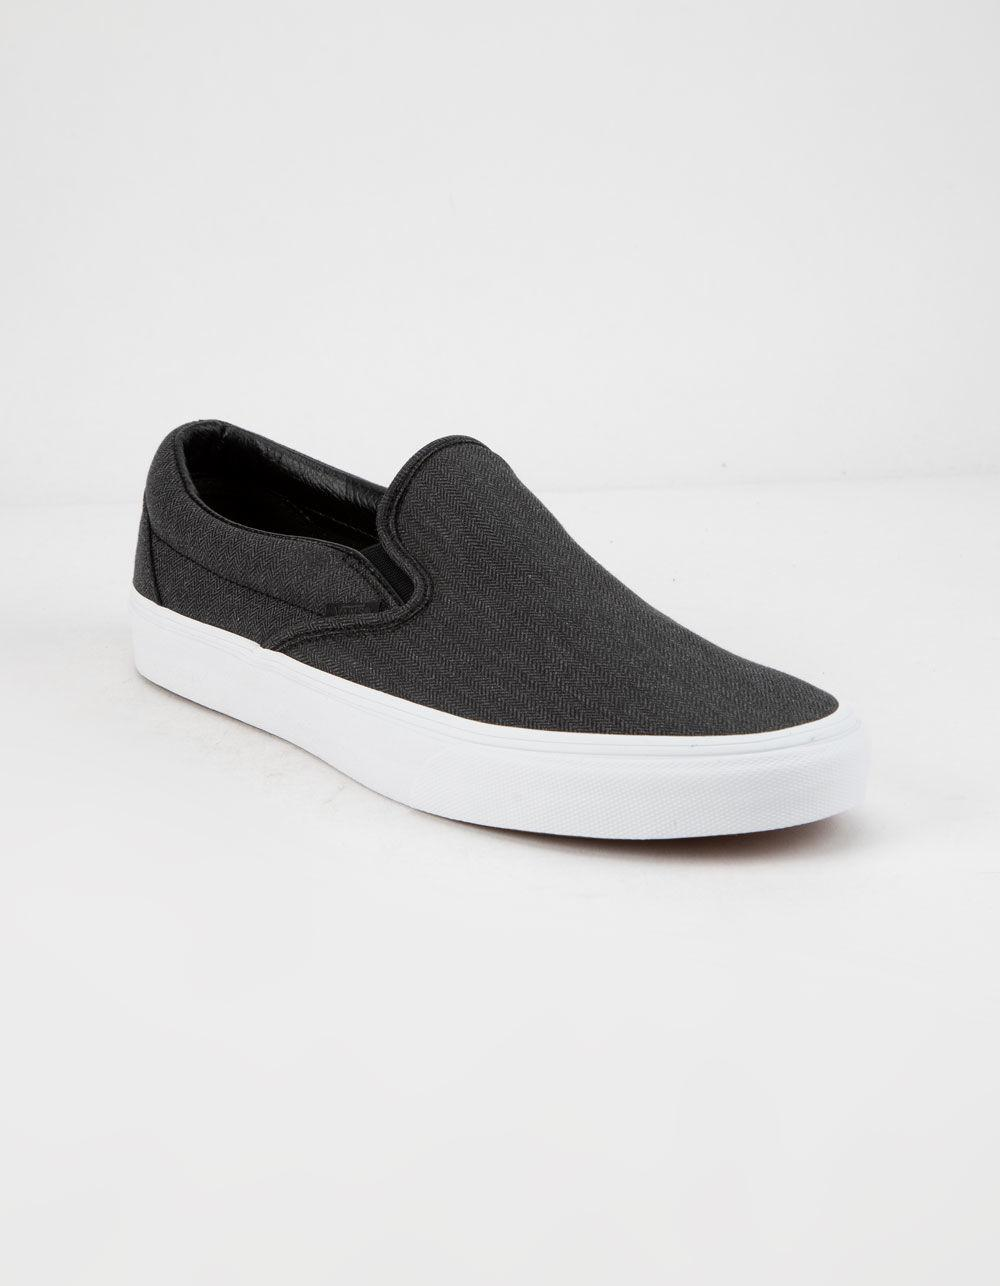 Lyst - Vans Herringbone Classic Slip-on Mens Shoes in Black for Men - Save  8% c3ec56bfb